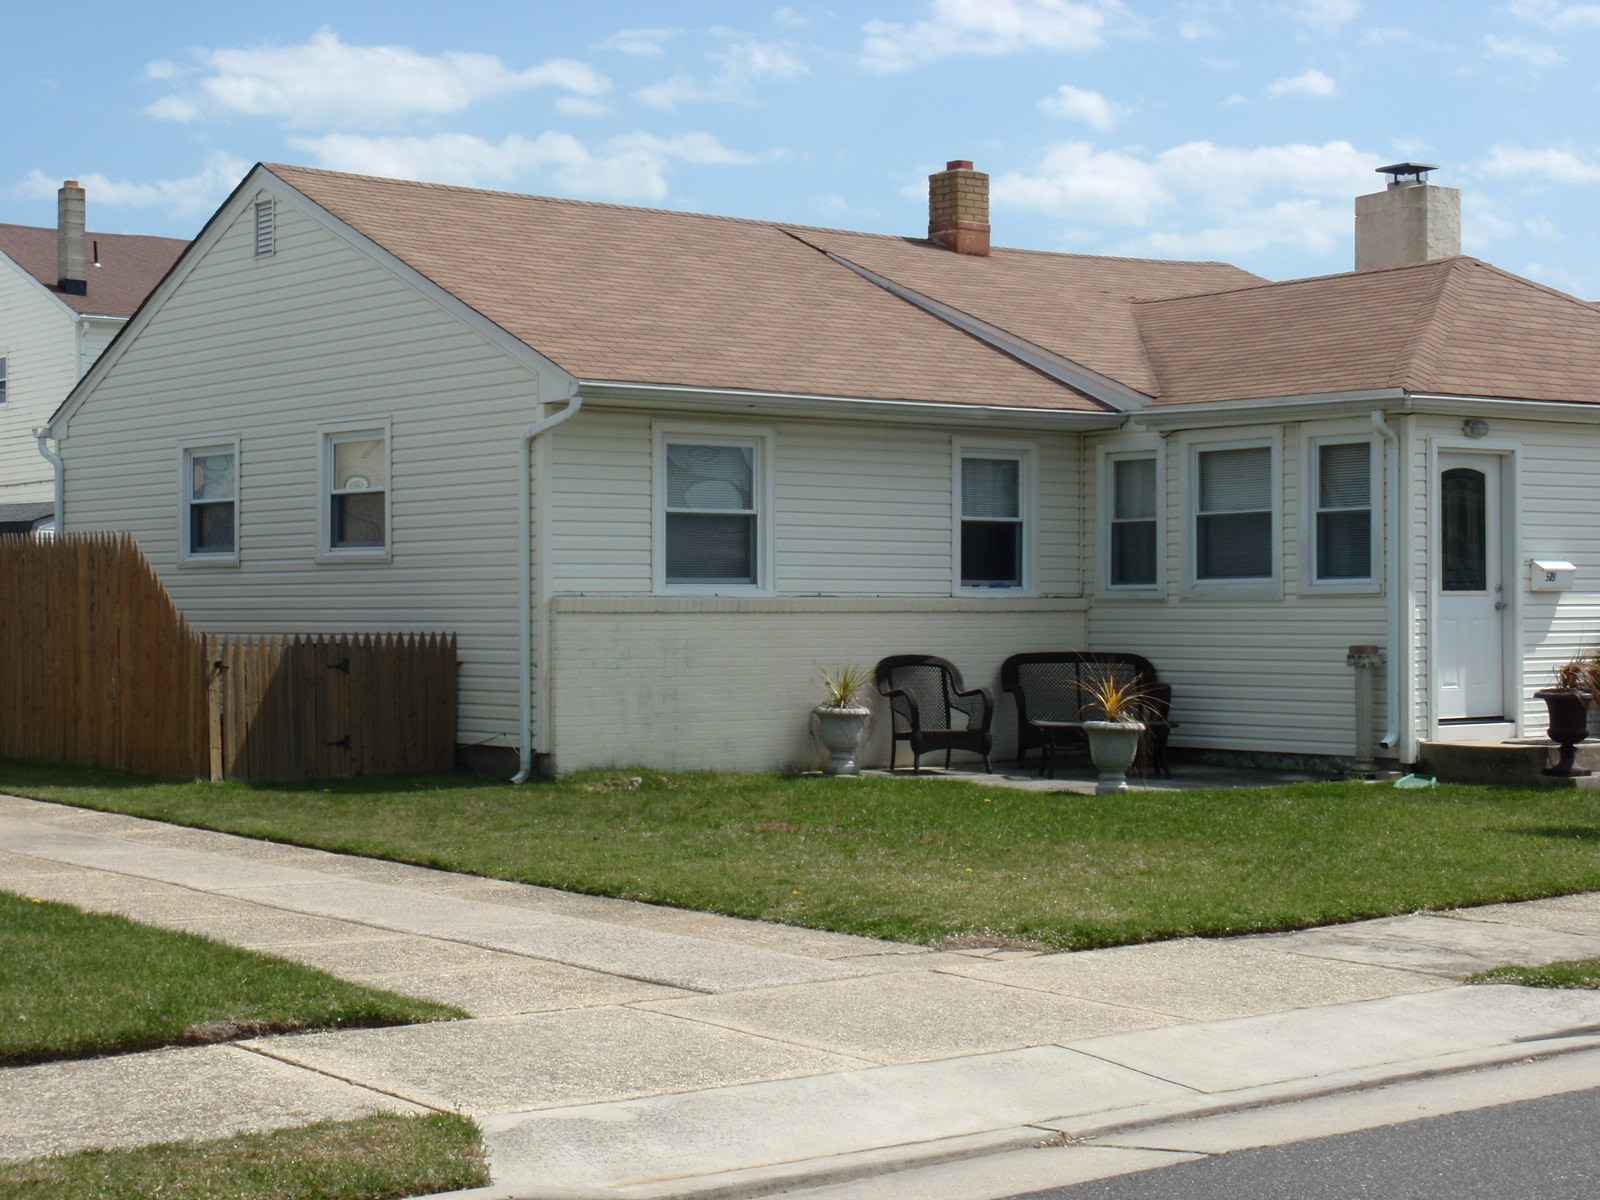 Single Family Home for Sale at 509 N Cornwall Avenue Ventnor, New Jersey, 08406 United States